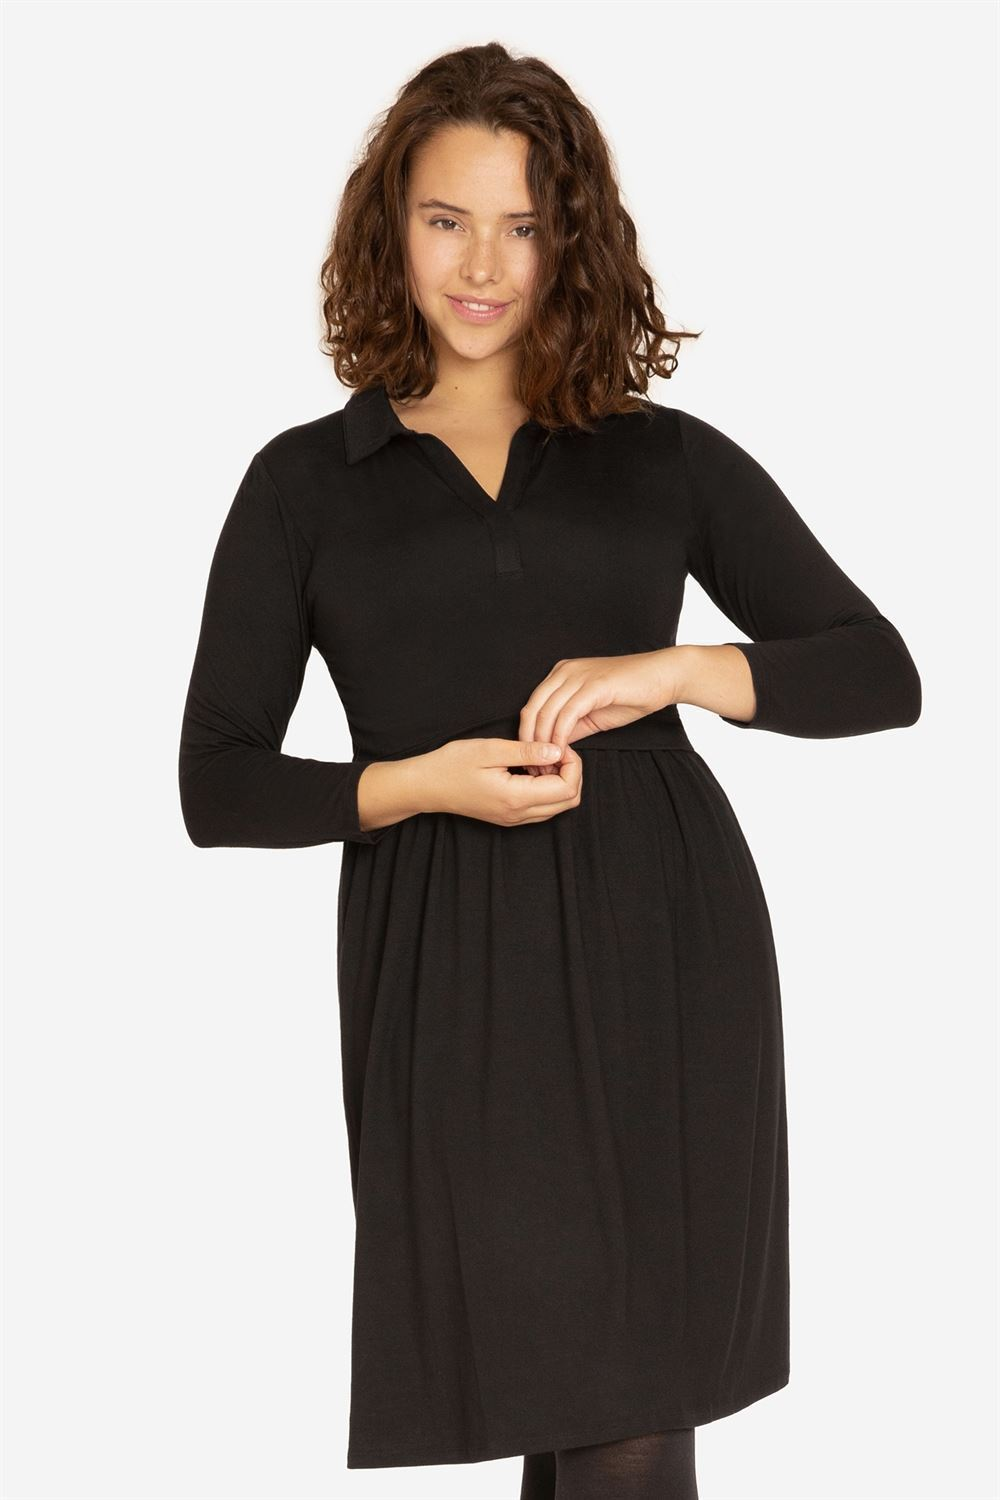 Black nursing dress with a stylish shirt-collar - Plus size model